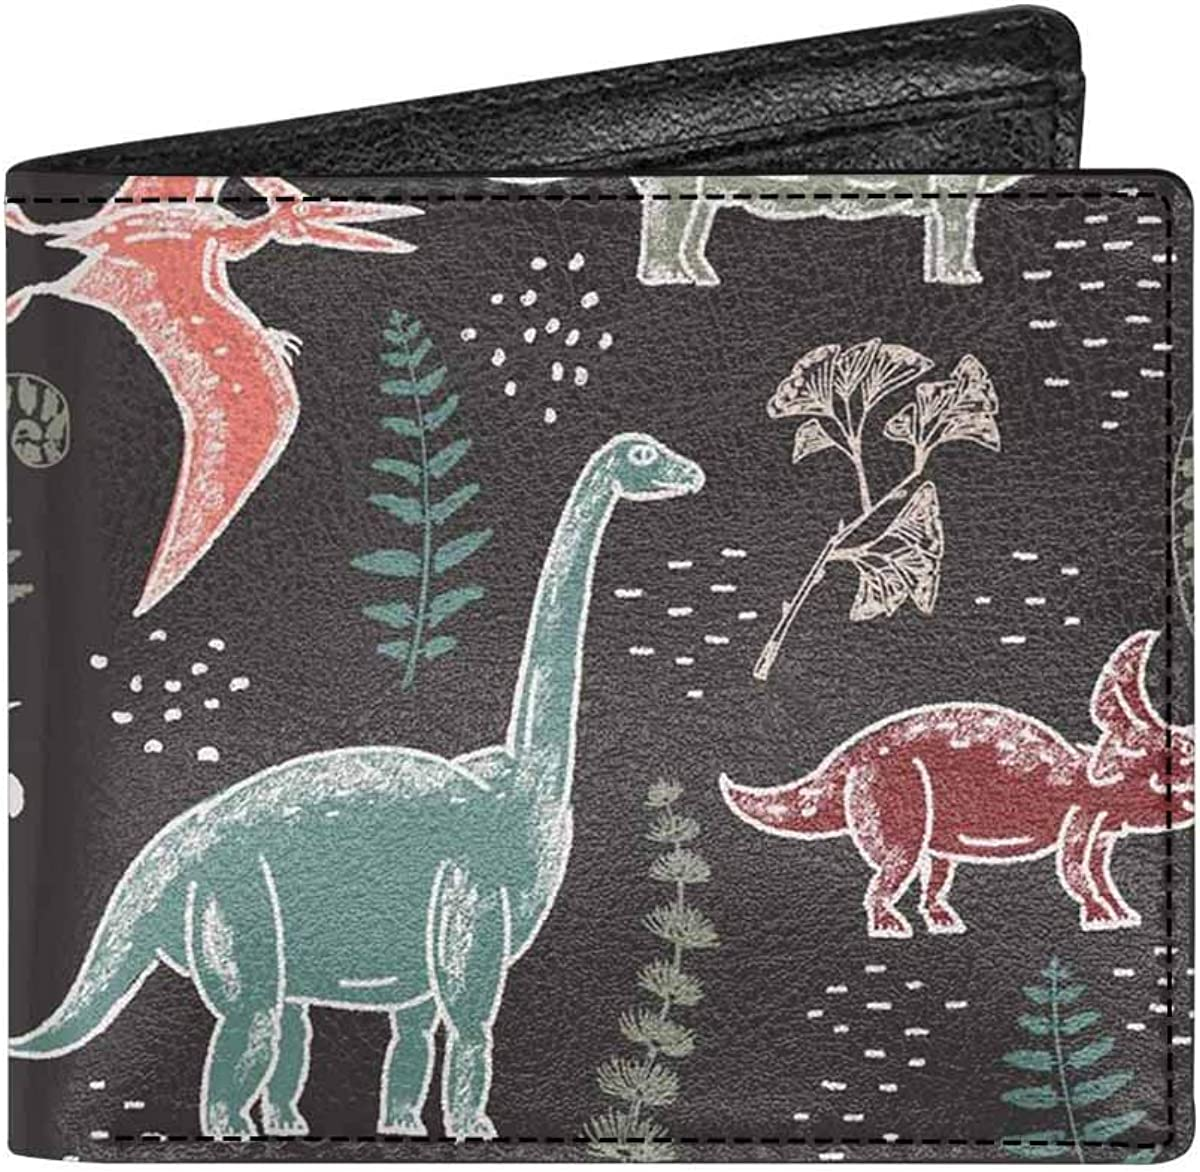 INTERESTPRINT Dark Leaves Unisex PU Leather Bifold Wallet With Coin Pocket and ID Window